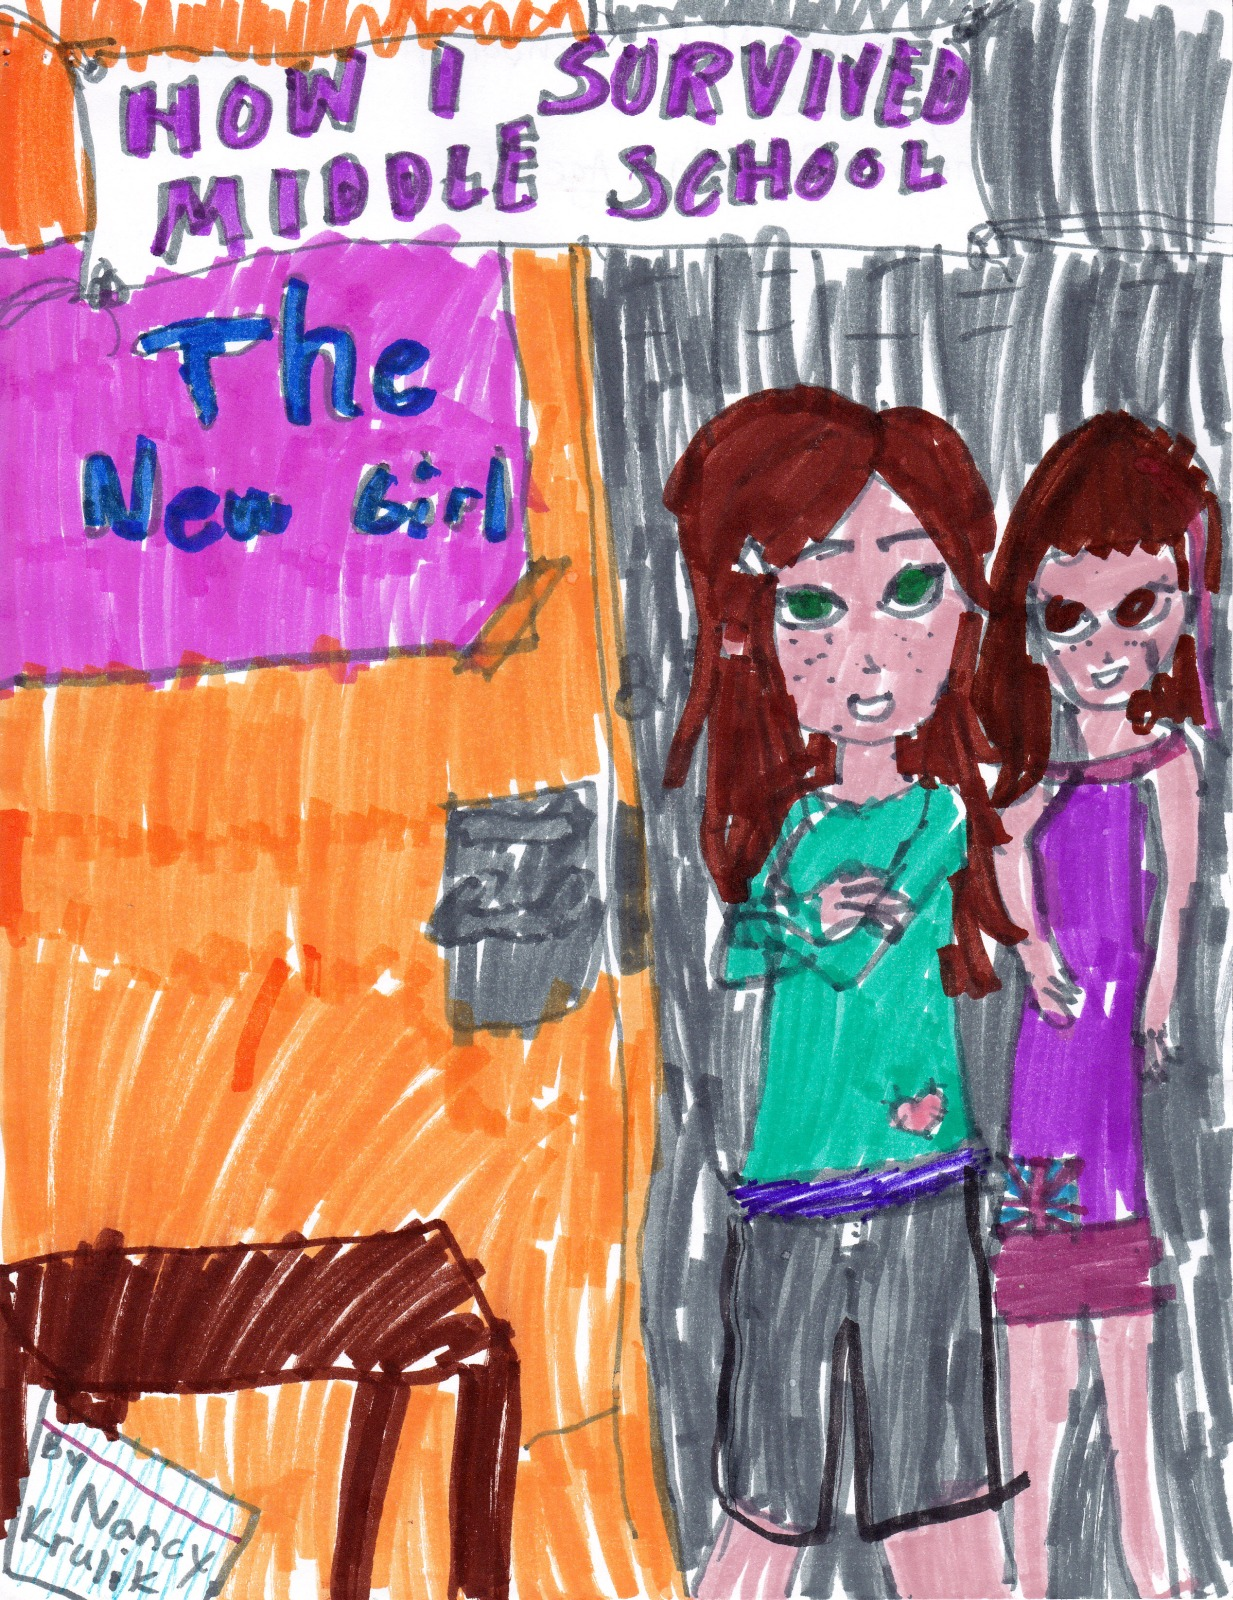 The New Girl: How I Survived Middle School, artwork by Katherine Cornish